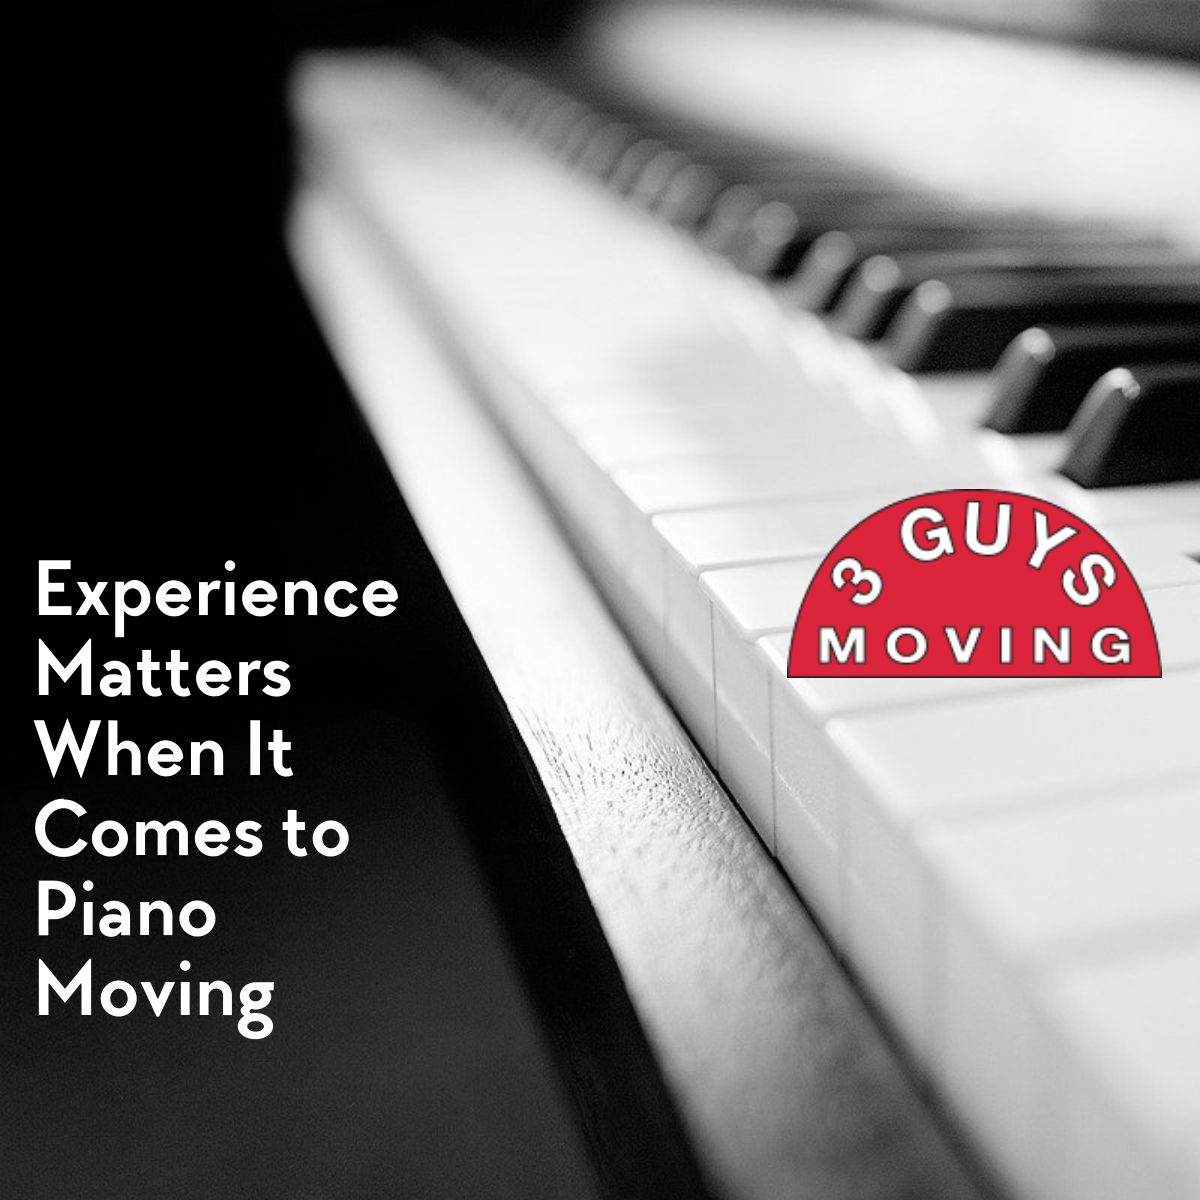 Piano Moving - Experience Matters When It Comes to Piano Moving